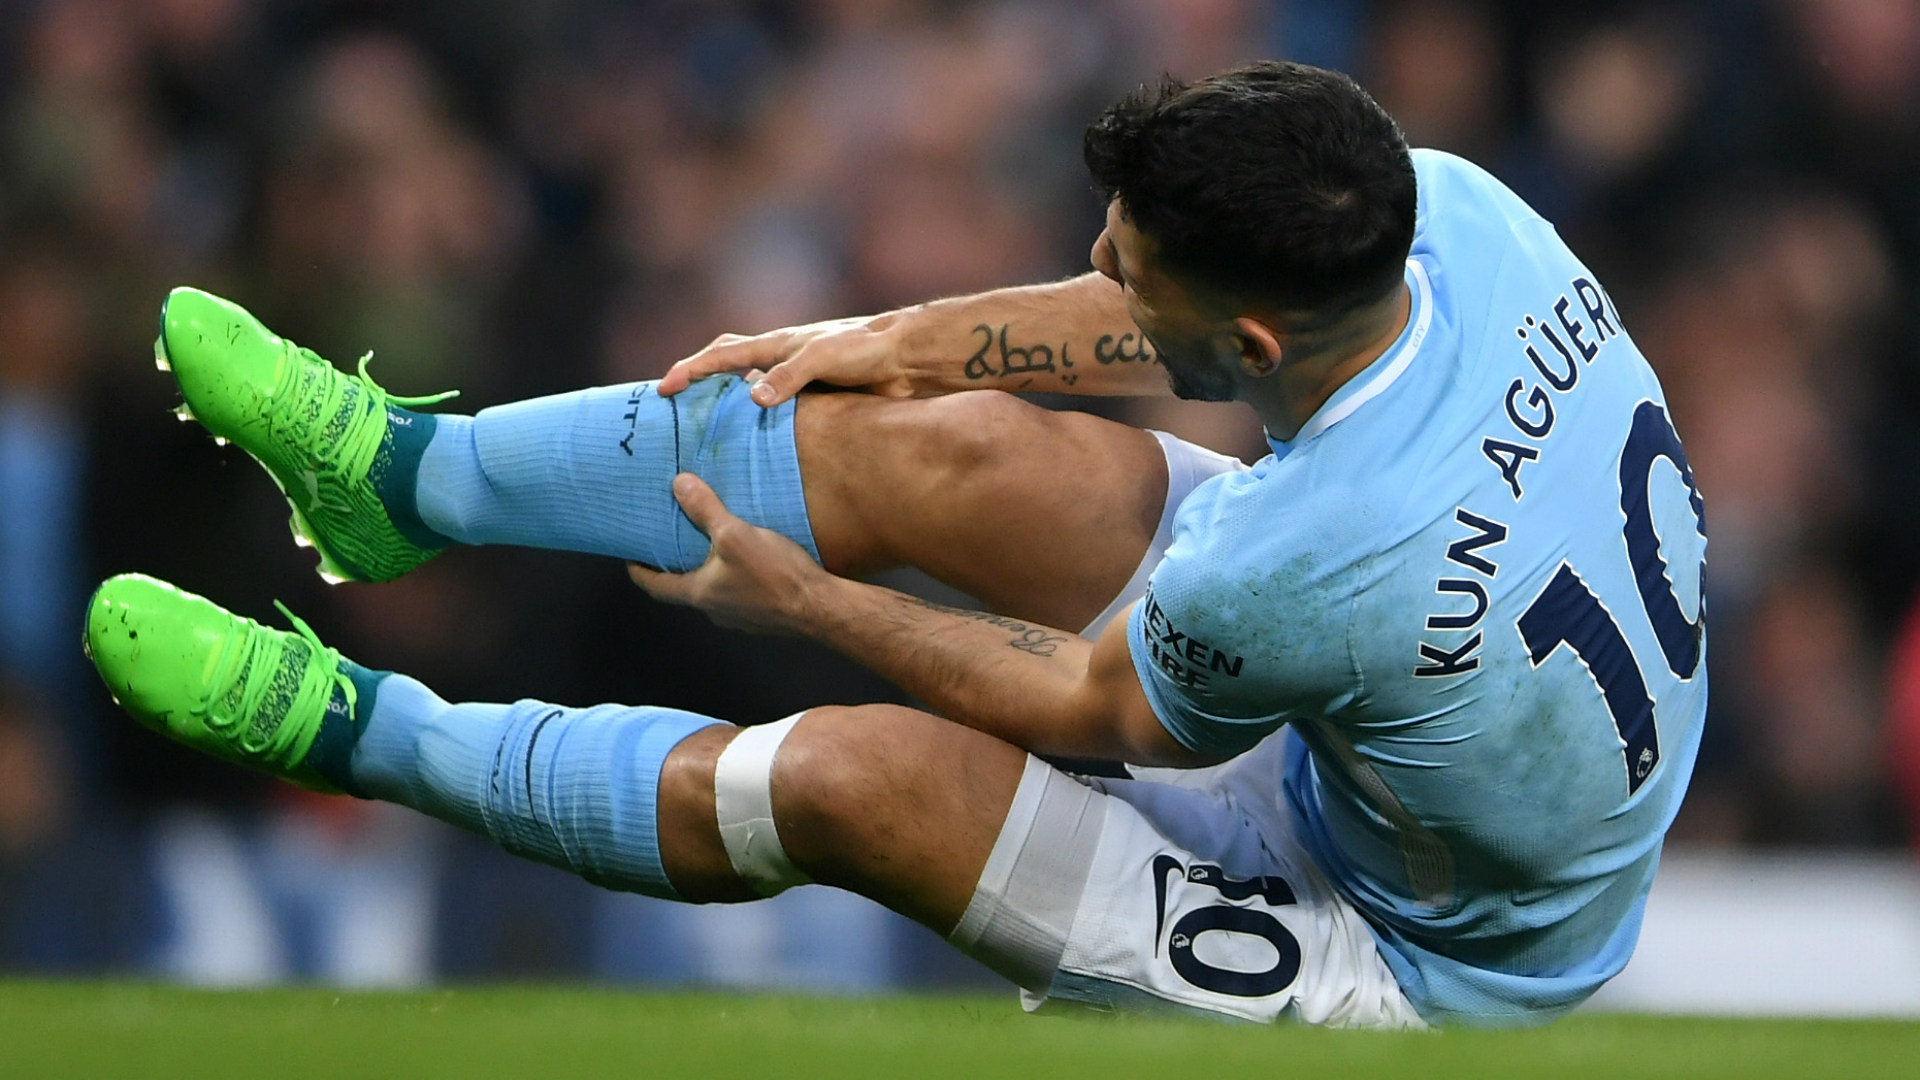 Man City striker Aguero to miss rest of season